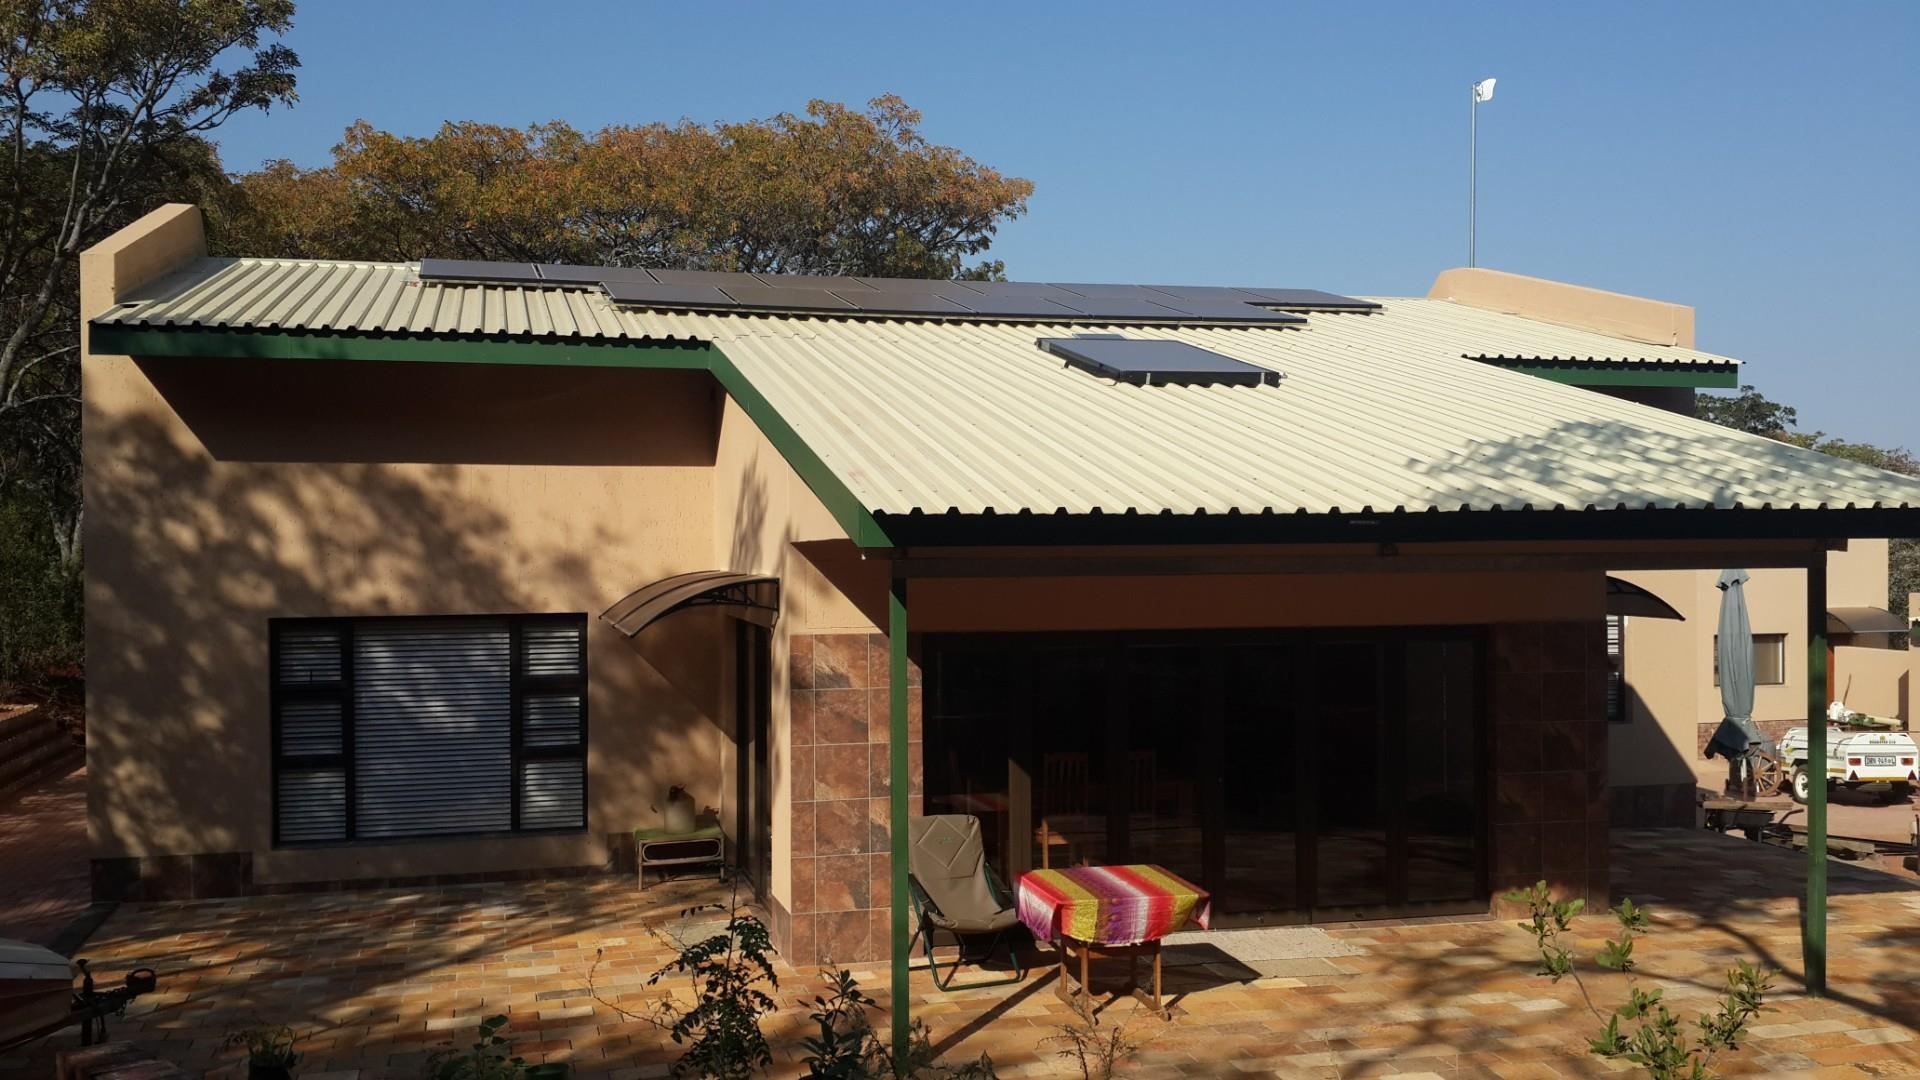 3 bedroom House in Modimolle | RE/MAX